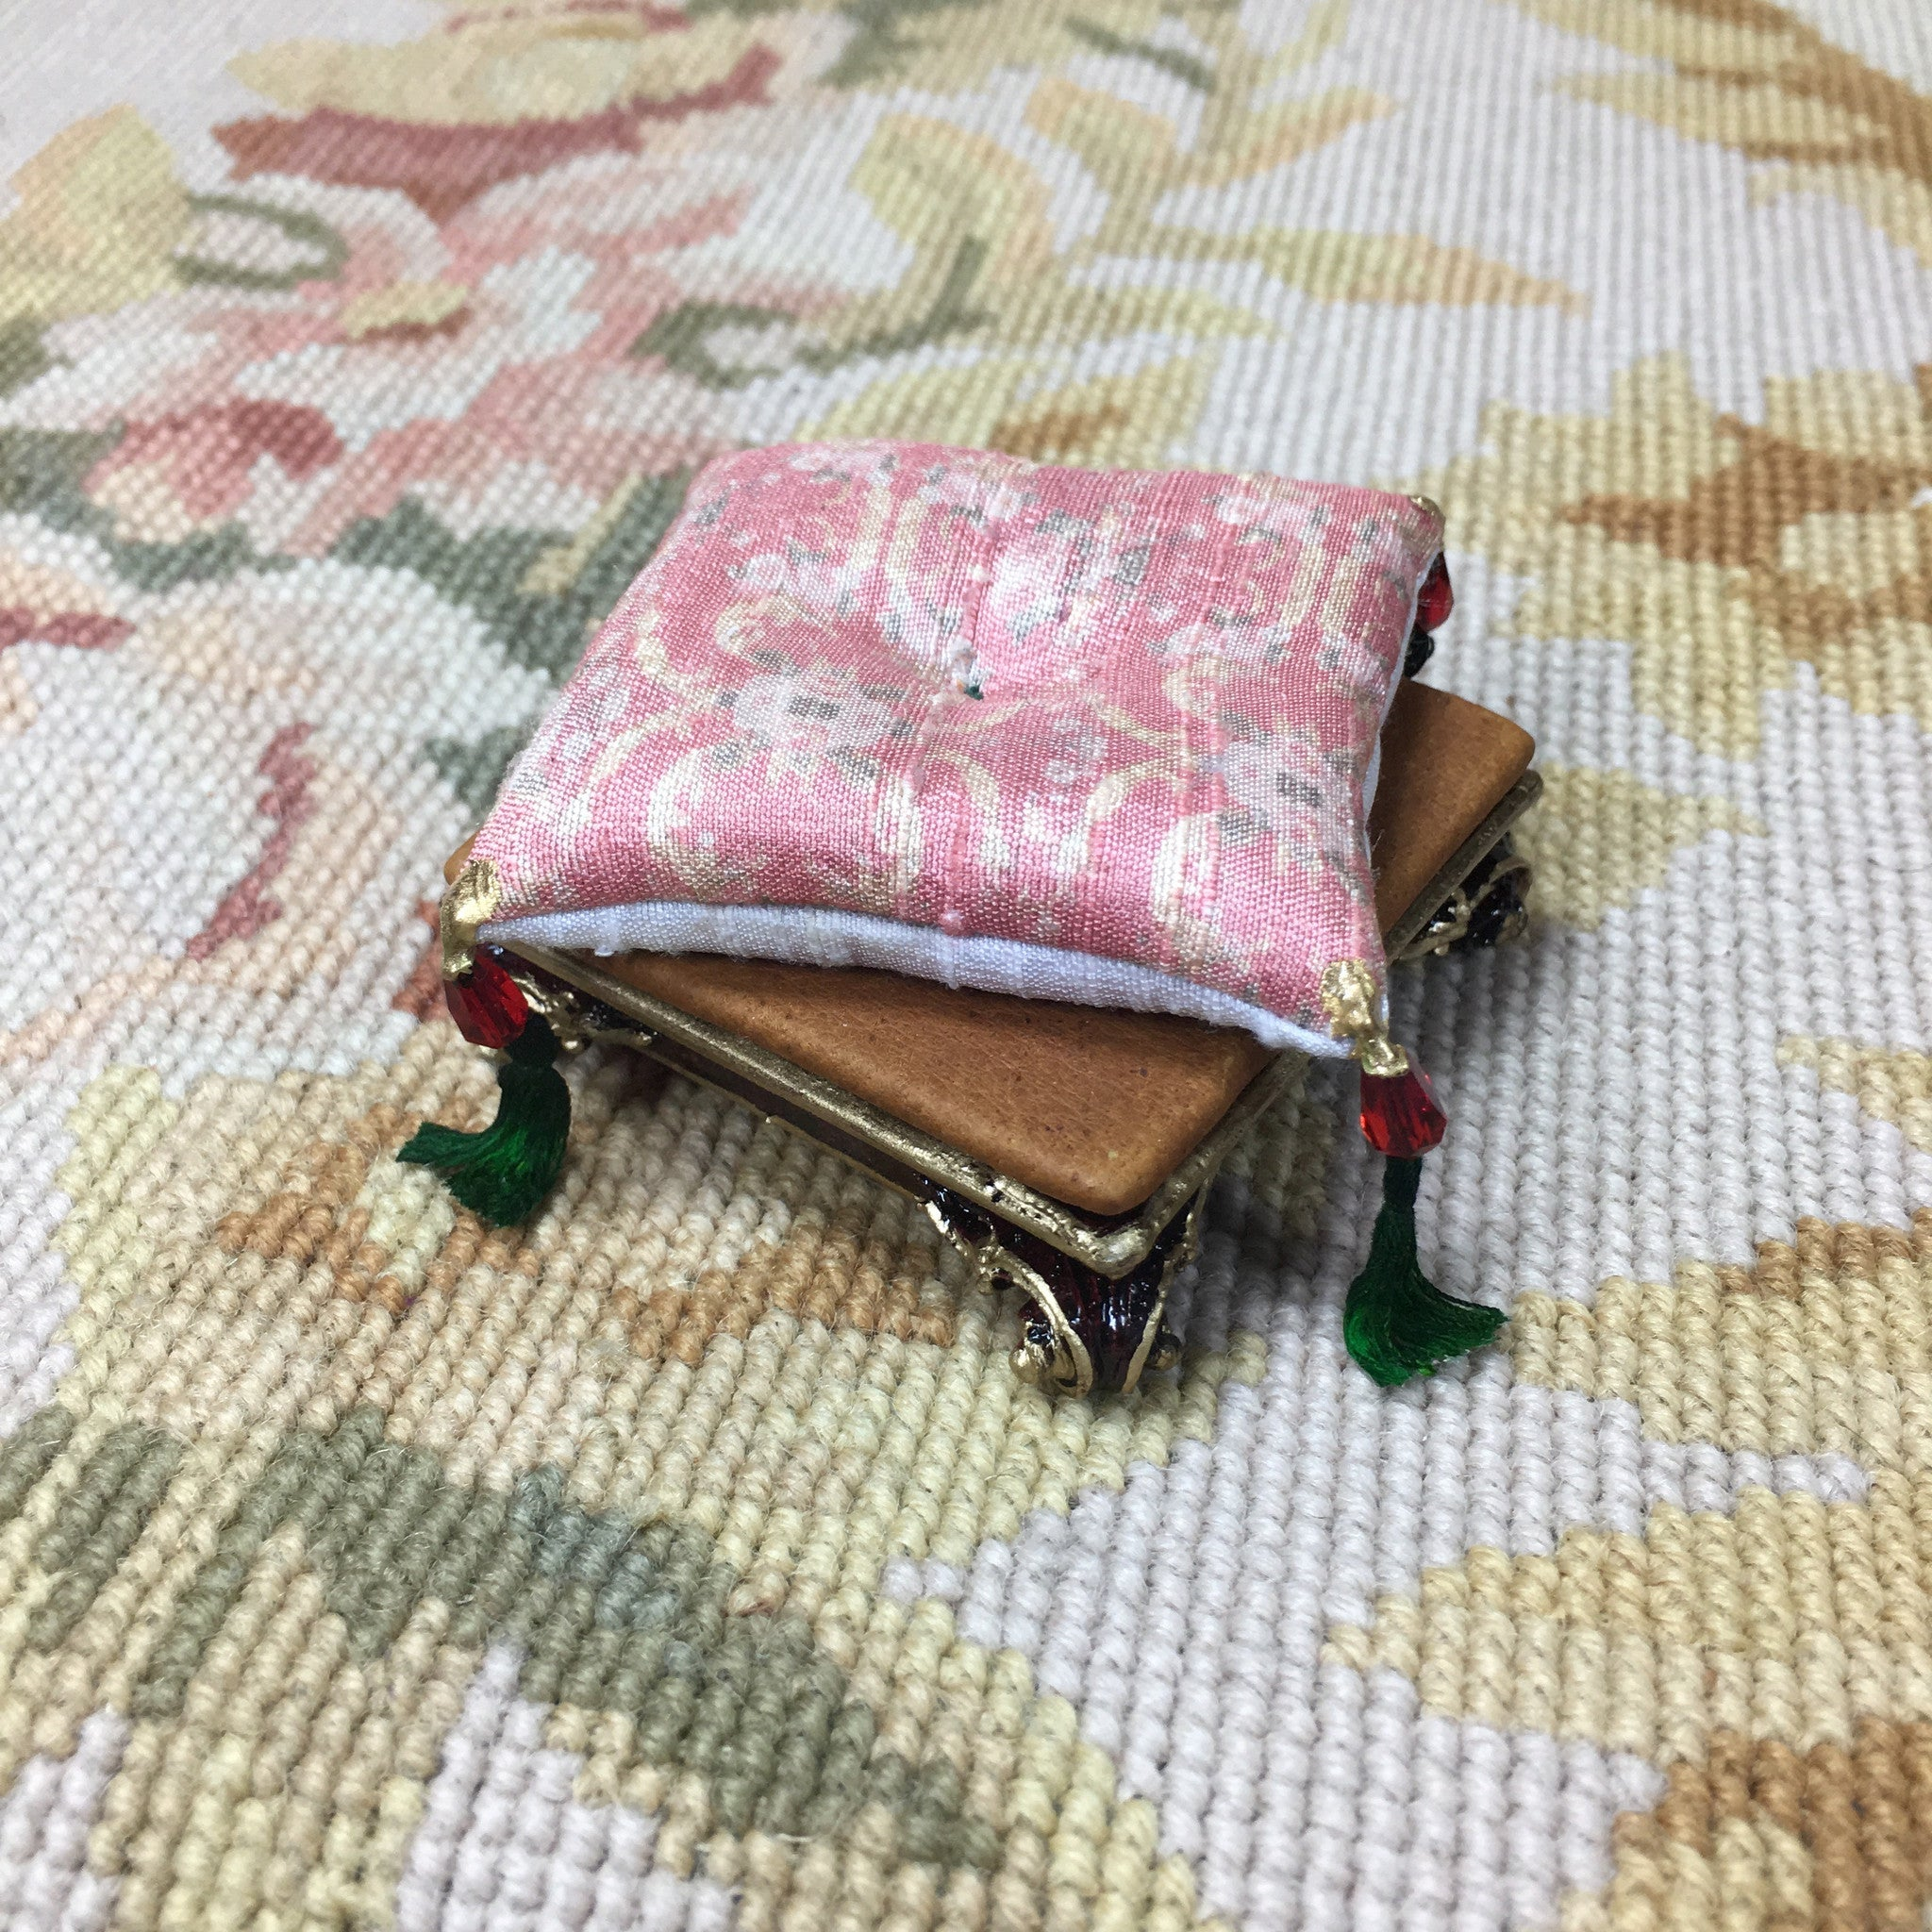 Stool Ottoman Hassock Seat Floral Silk Fabric 1:12 Scale SPECIAL ORDER Dollhouse Miniature